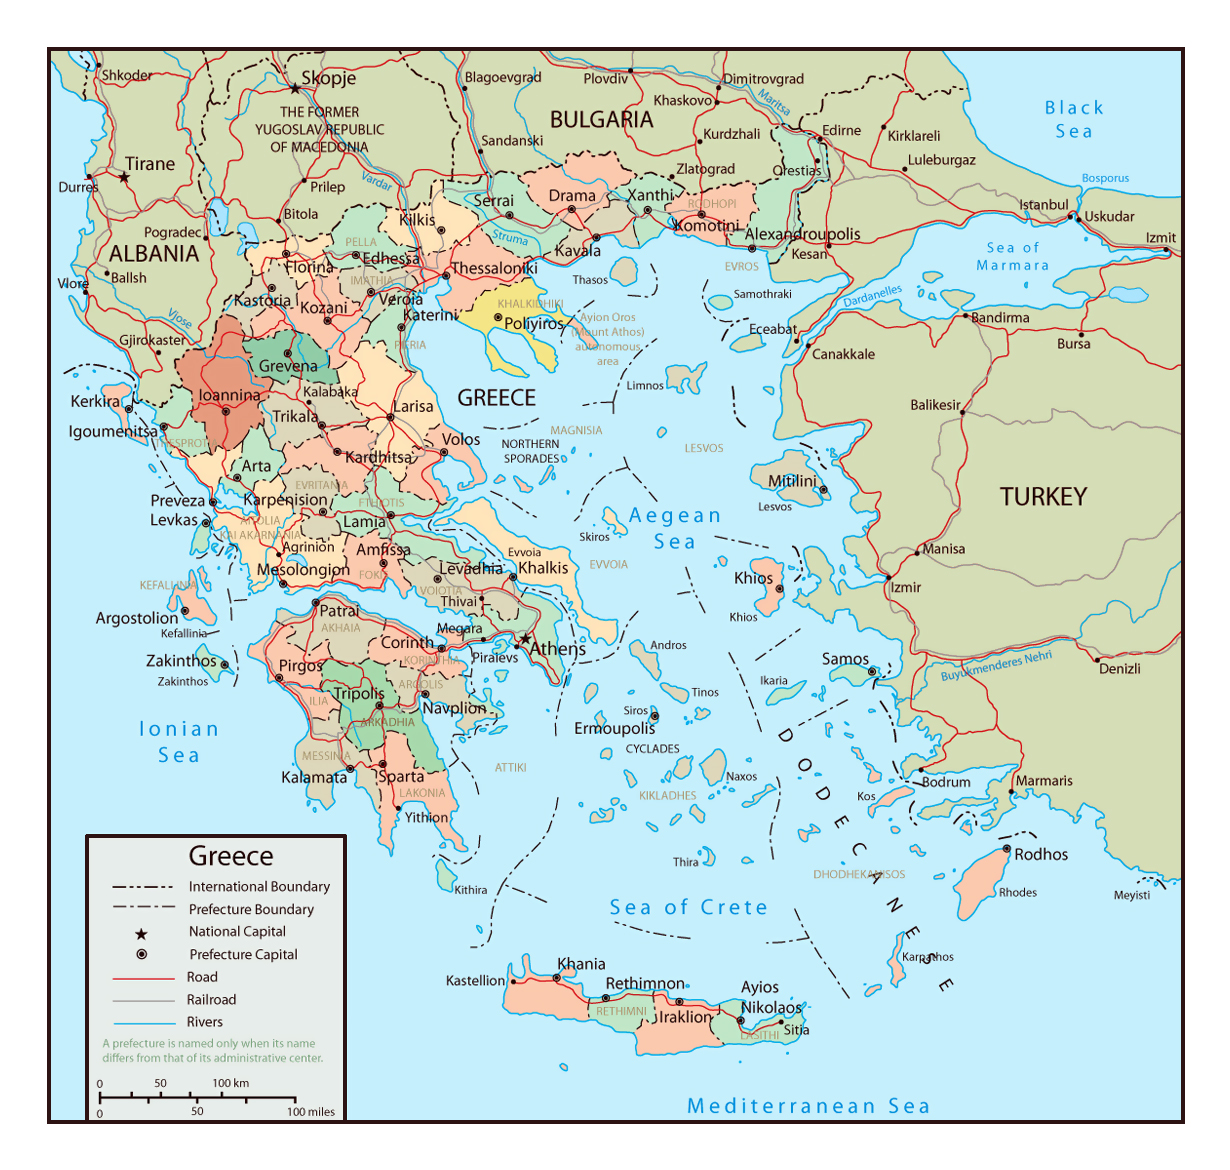 Large Political And Administrative Map Of Greece With Roads And - Political map of greece